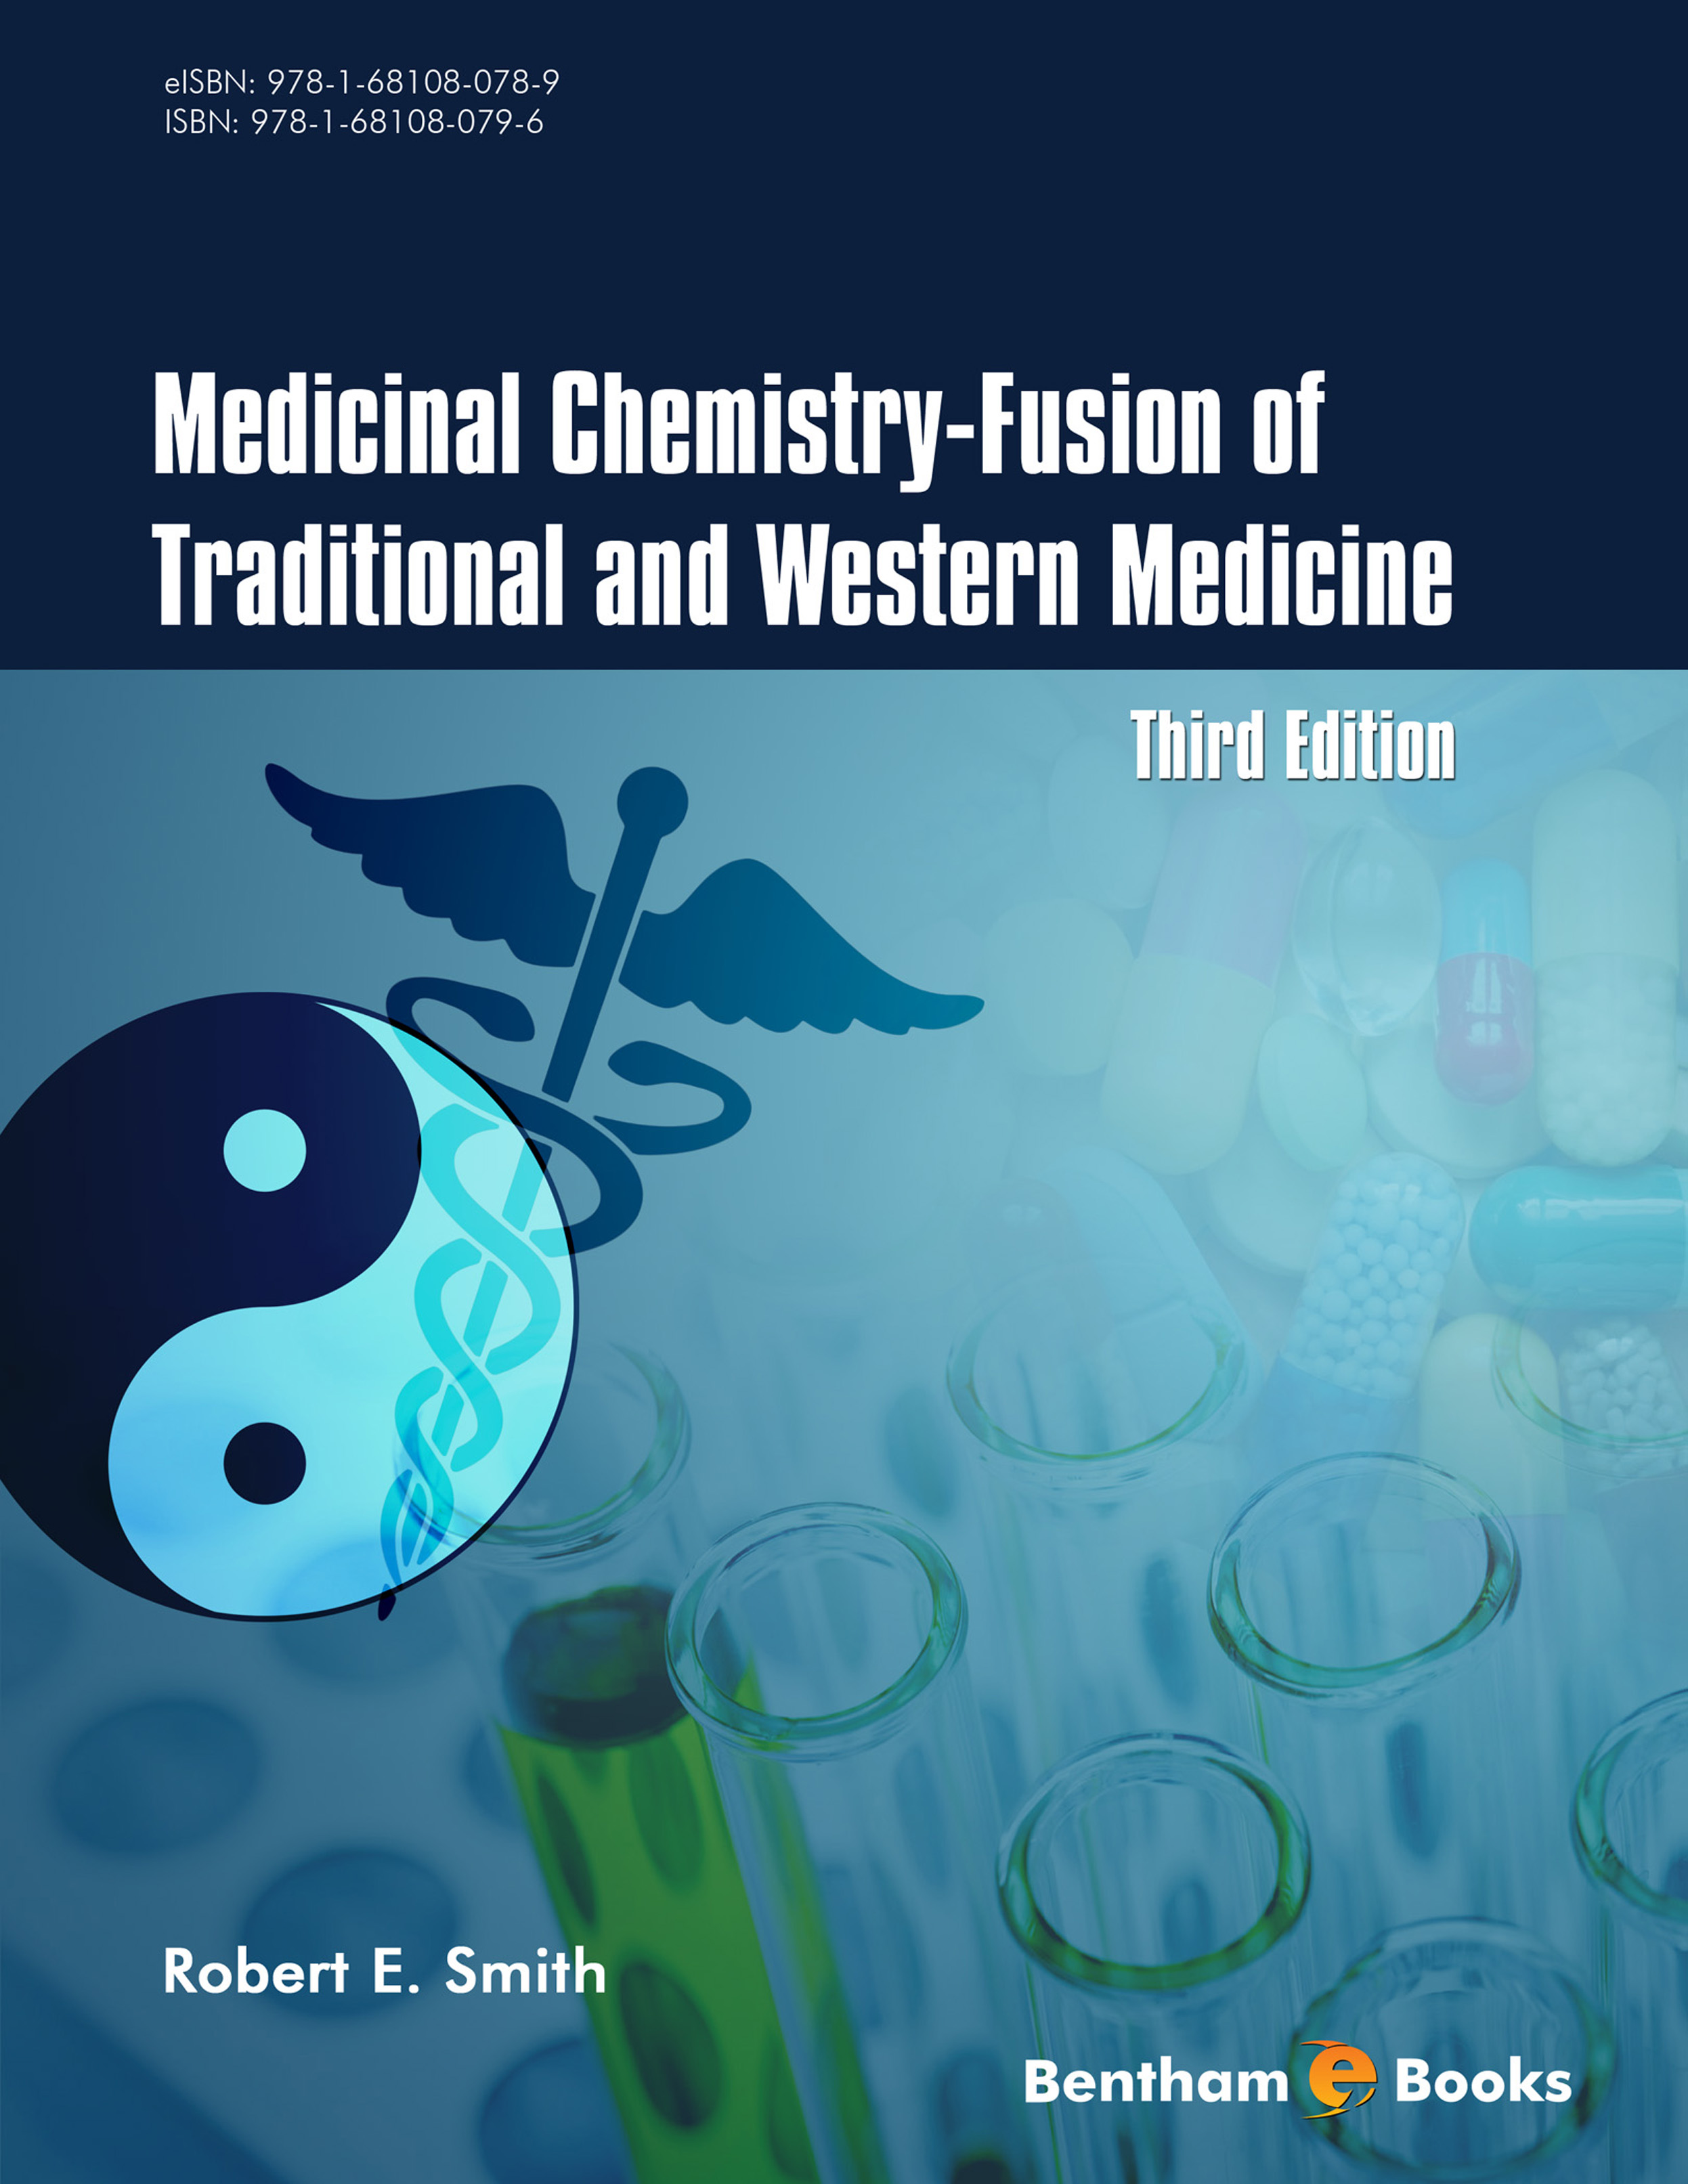 Medicinal Chemistry - Fusion of Traditional and Western Medicine, Third Edition